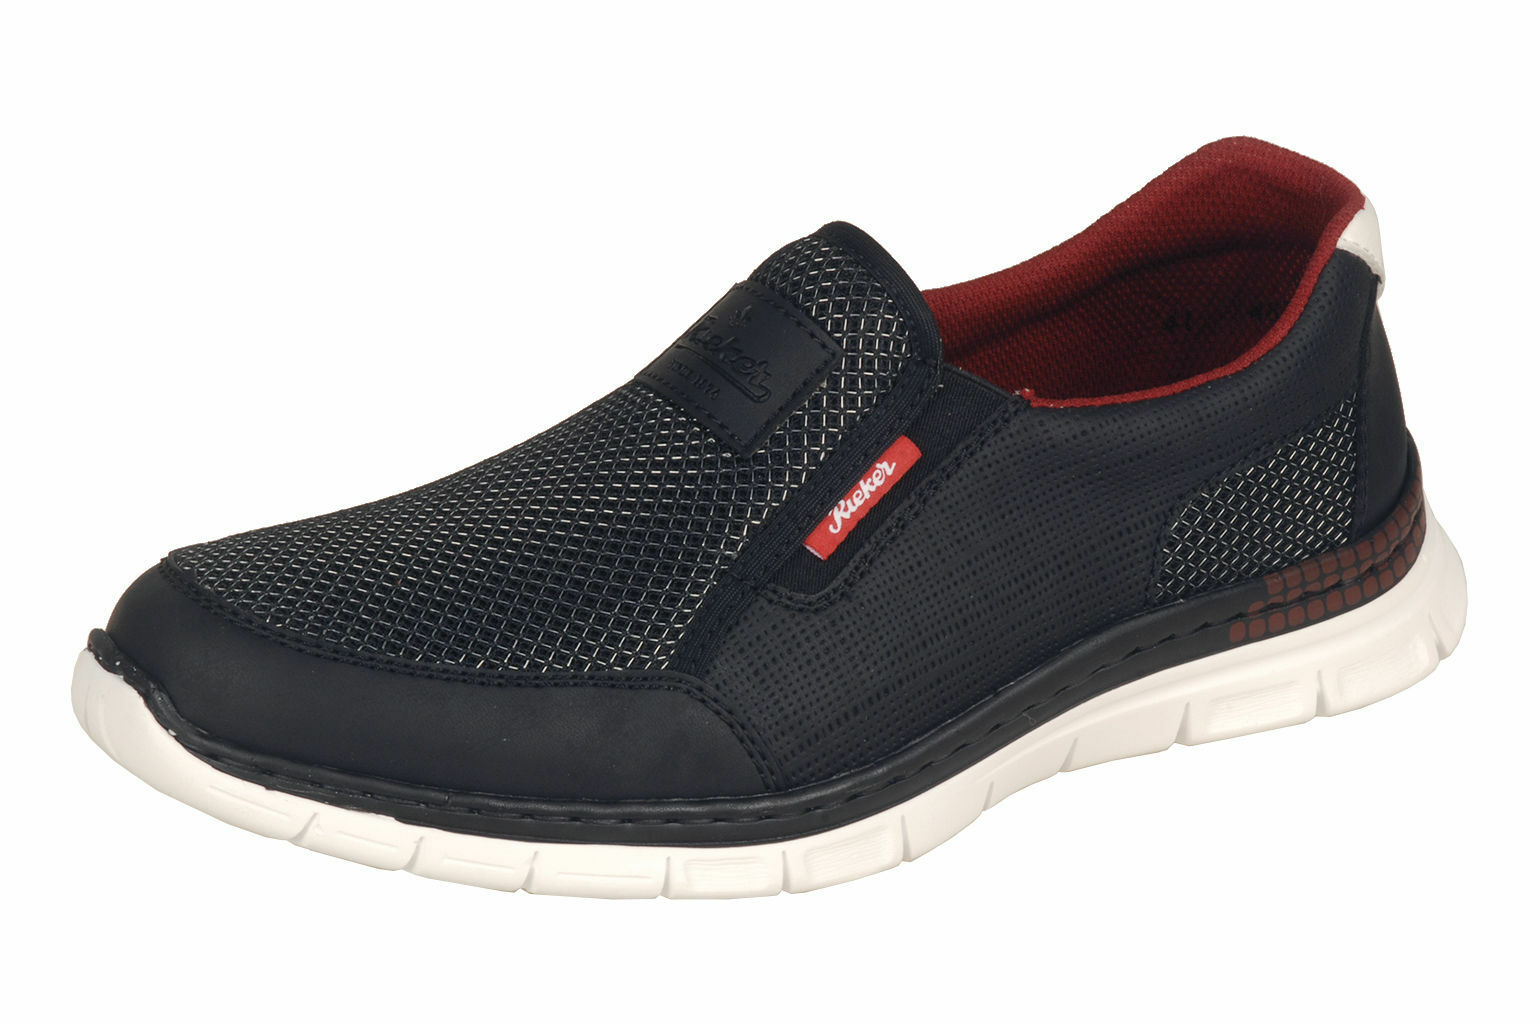 Homme Rieker Oilybuck B4870 Noir Taille Taille Taille Basse Slip on Sportif Chaussures  memory mousse | Grand Assortiment  62dce0